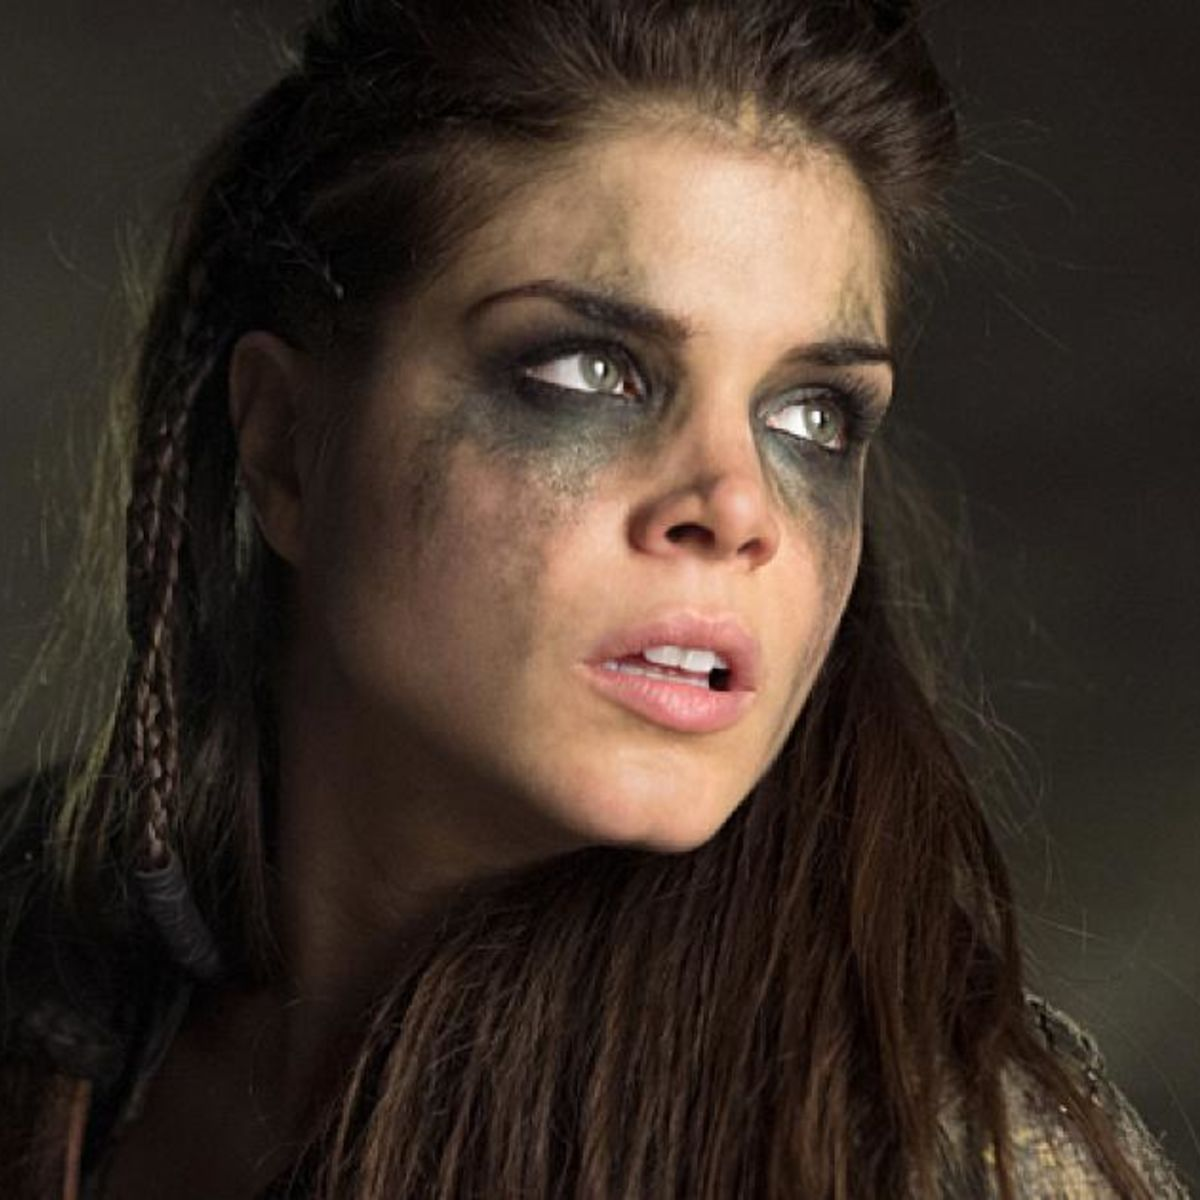 Marie avgeropoulos sex